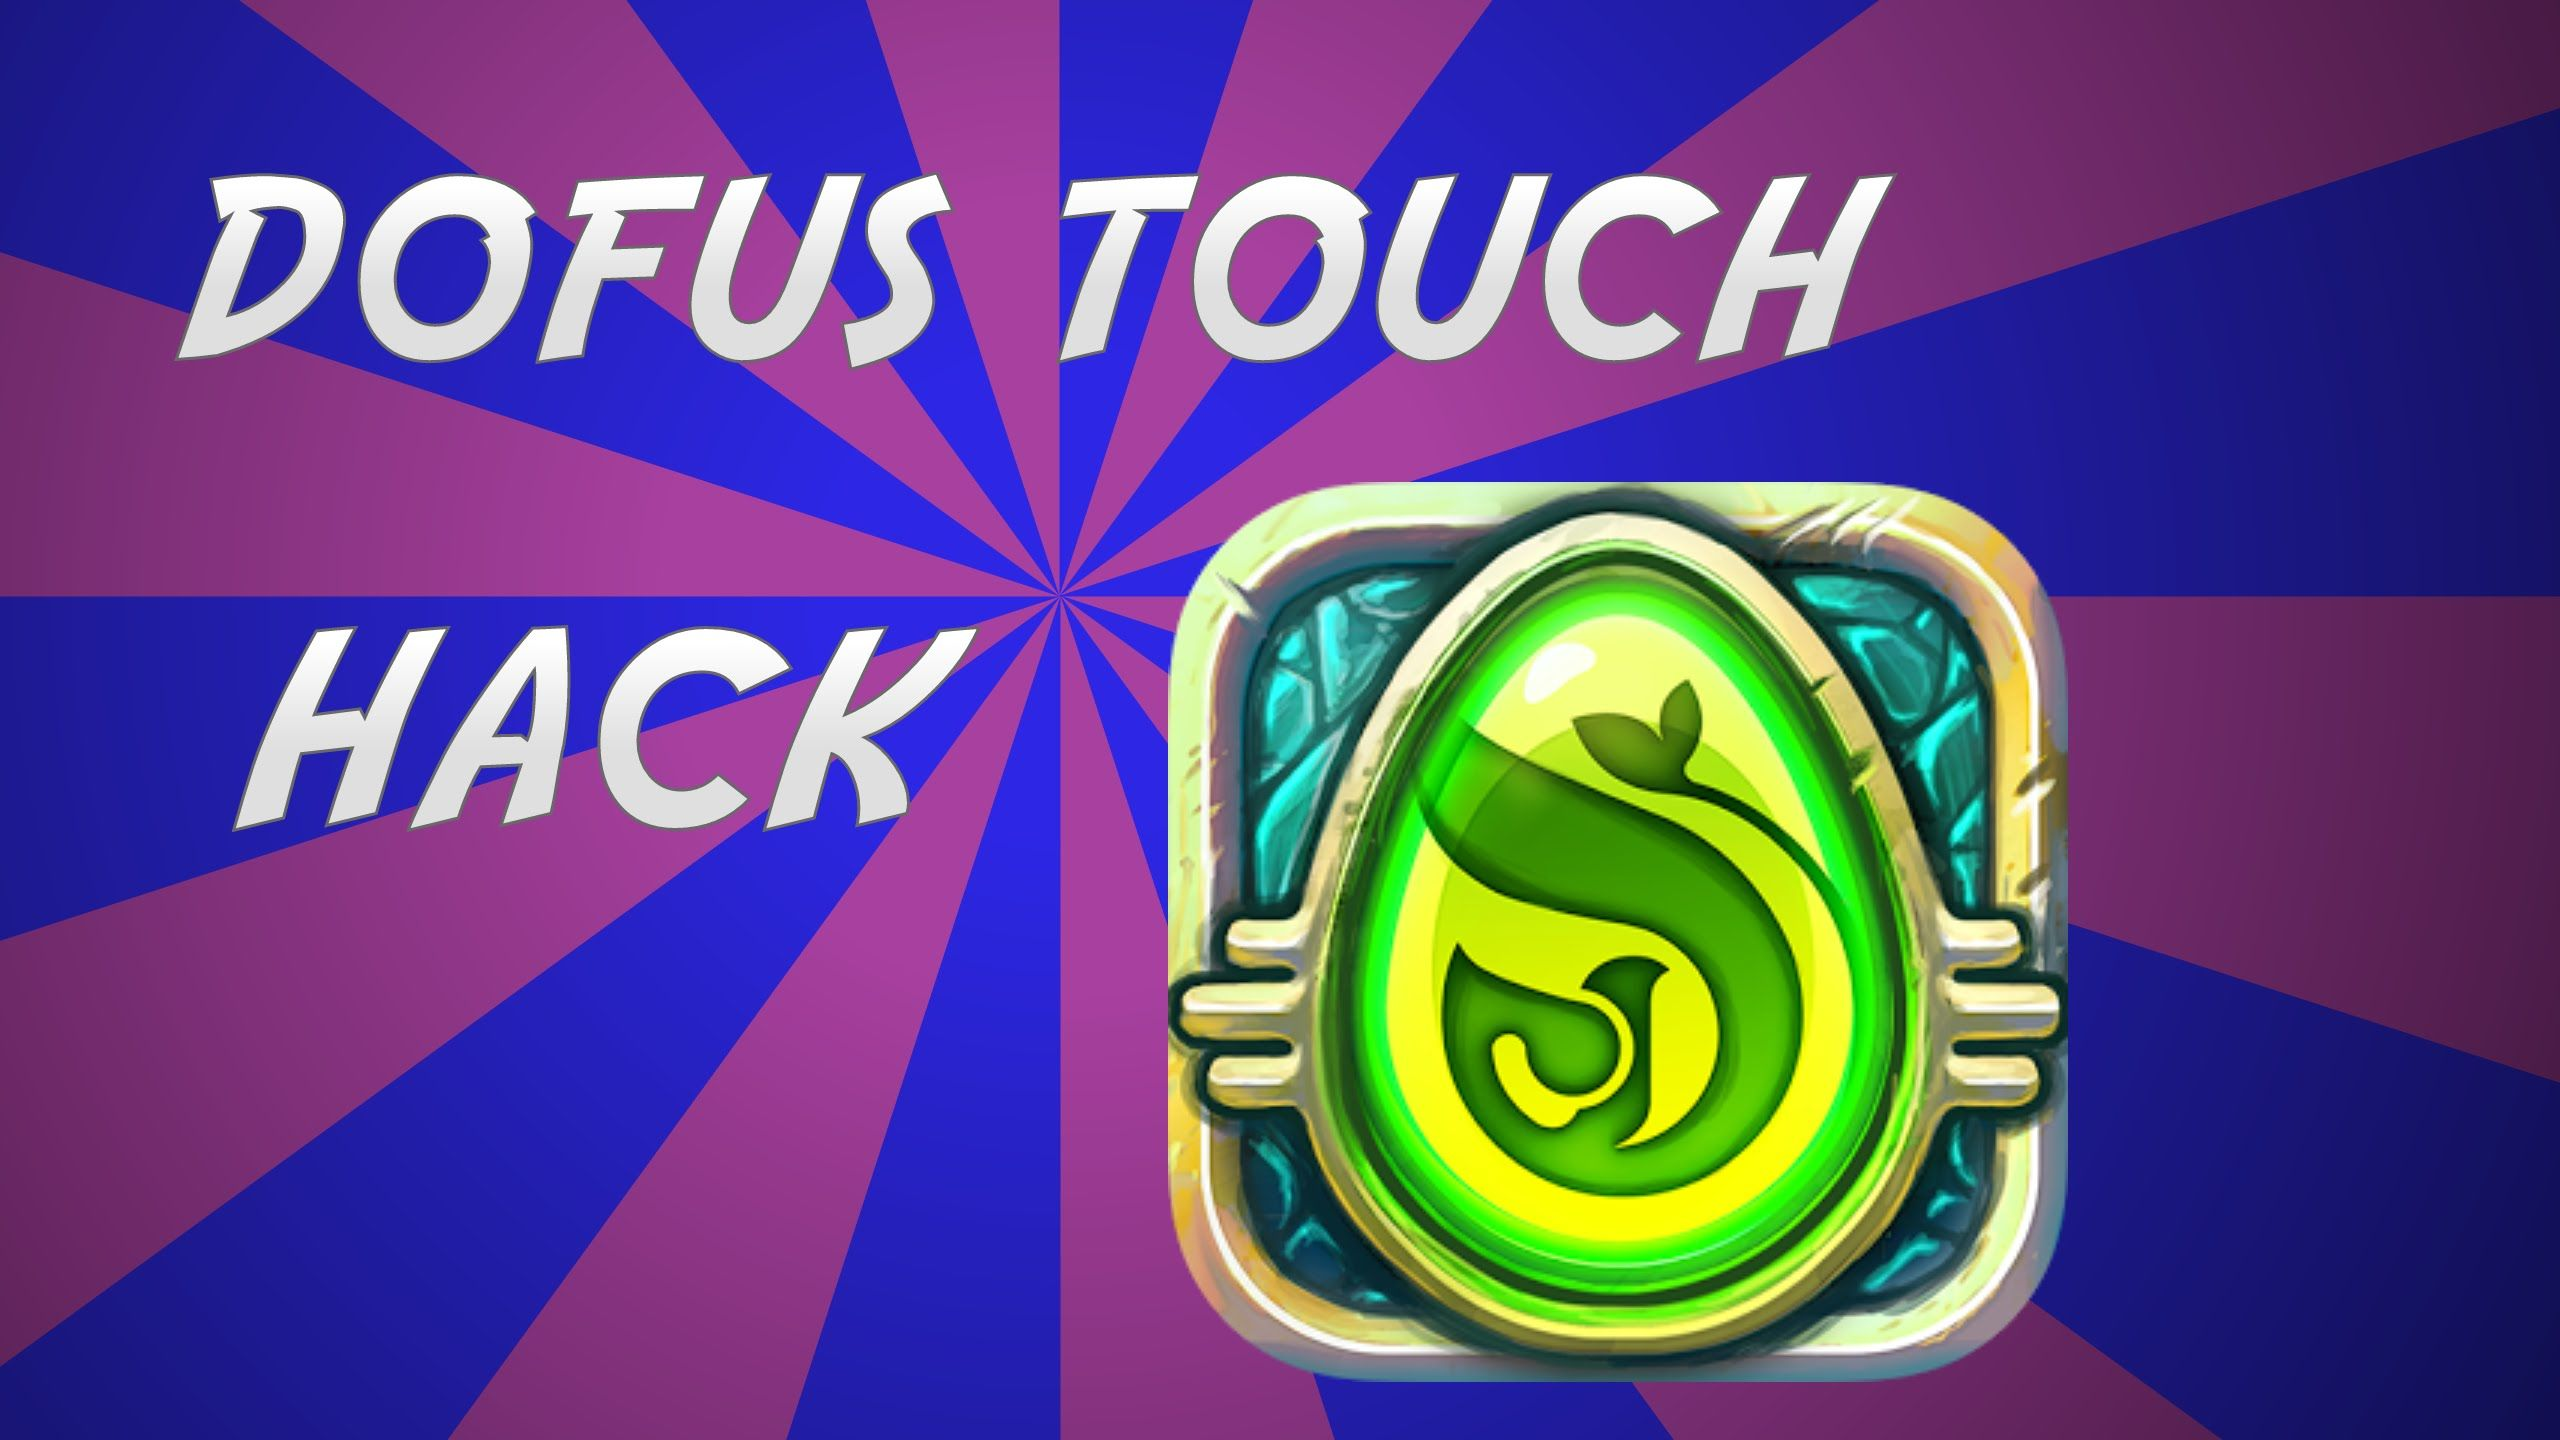 Dofus Touch Hack | ygames me | March of empires hack, March of